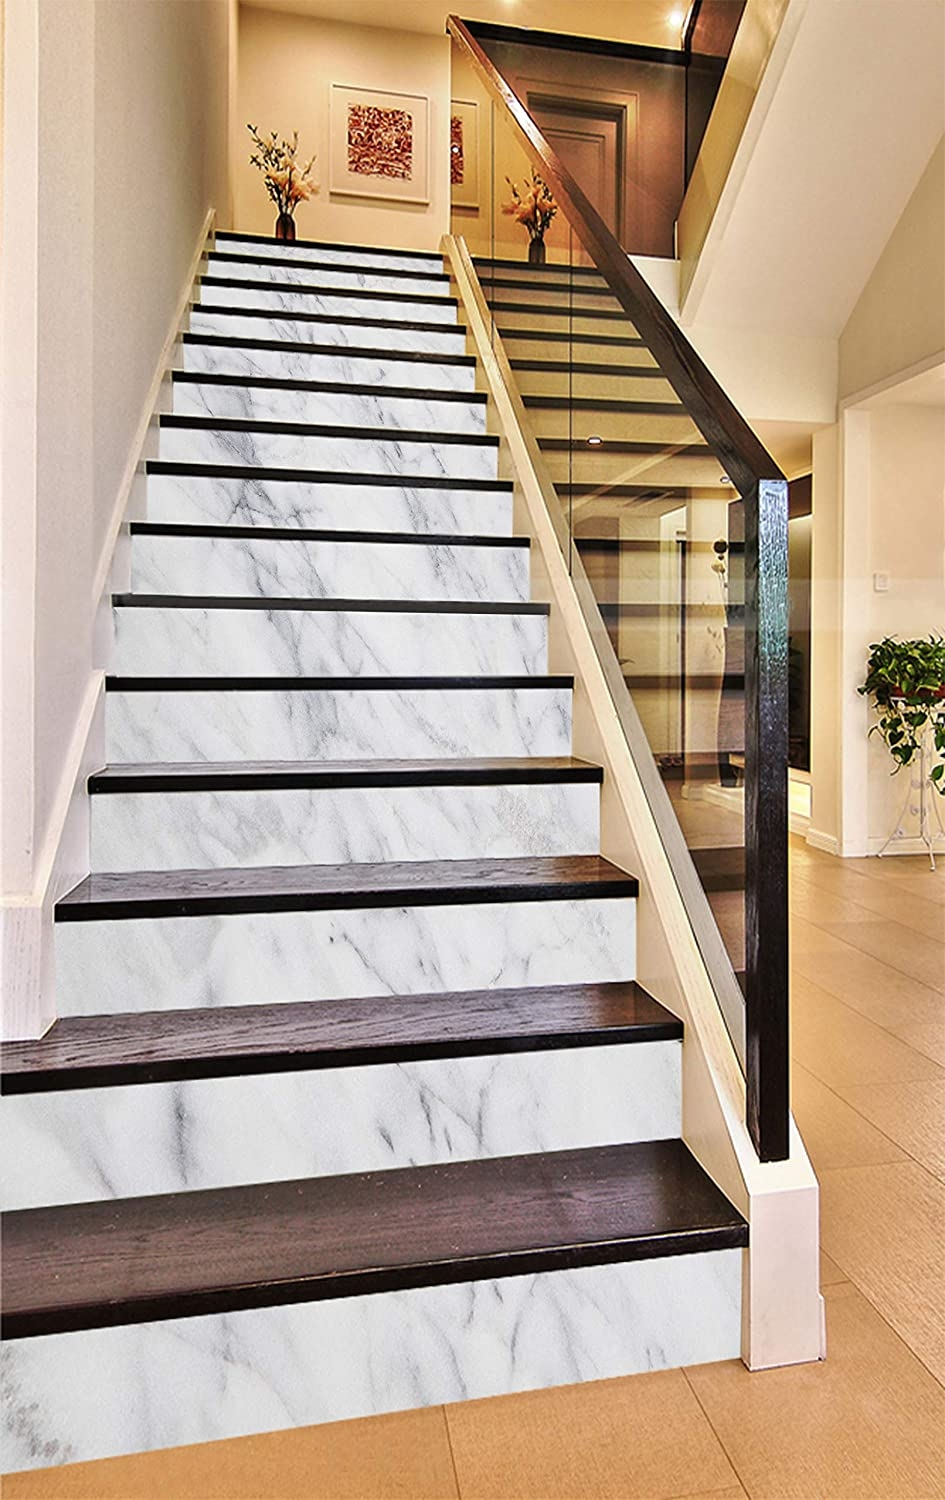 3D Elegant White 937 Pattern Tile Marble Stair Risers Decoration | Wood Look Tile For Stairs | Weathered Wood Distressed | Ceramic | Bedroom | Rocell Living Room | Porcelain